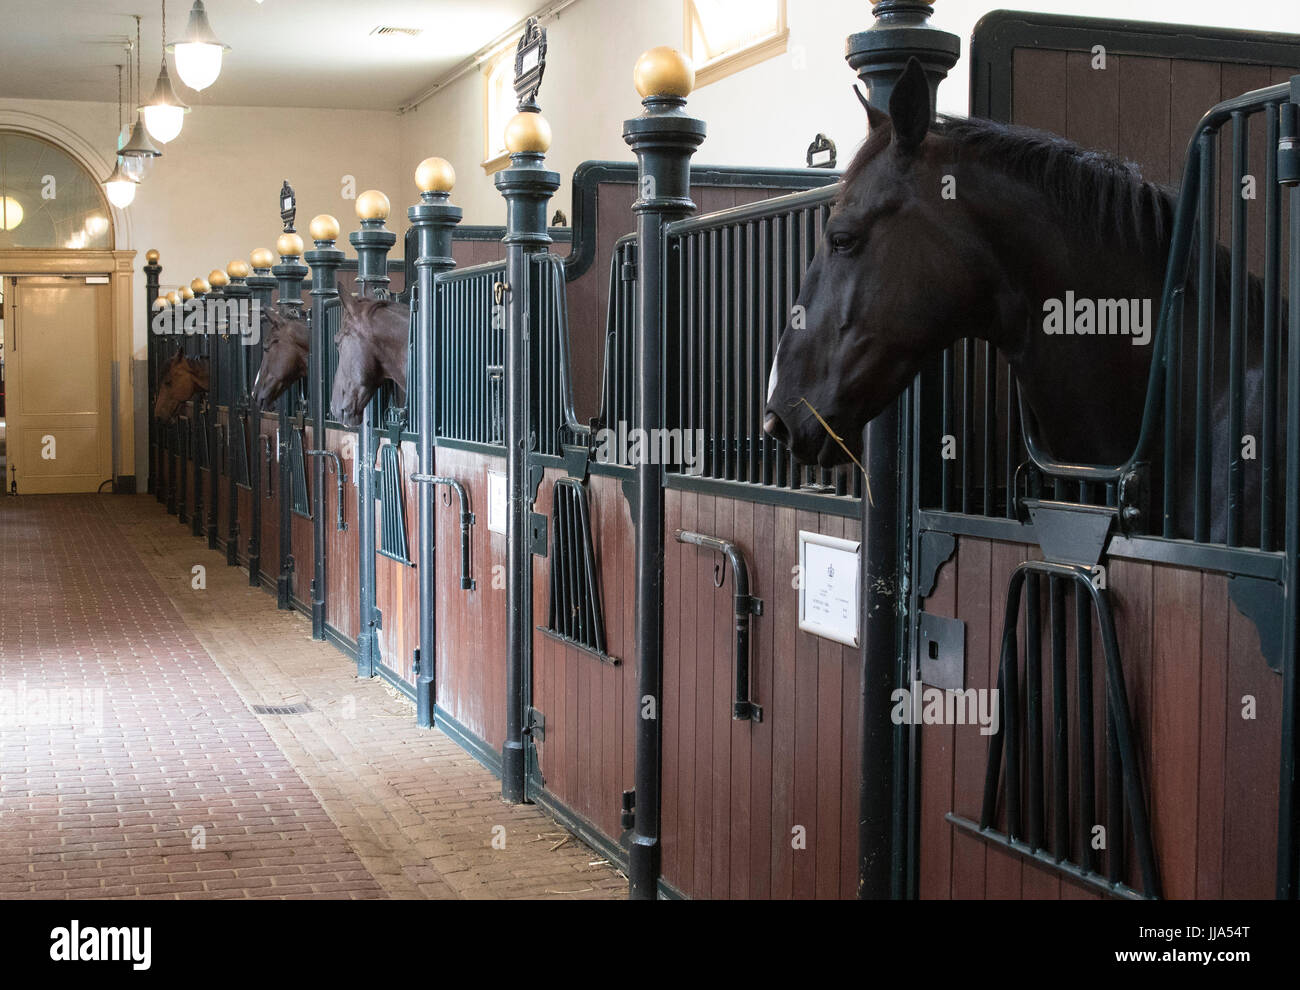 Horses at the Royal Stables (Koninklijke Stallen) during the Summer opening 2017 of the Royal Stables in The Hague, - Stock Image